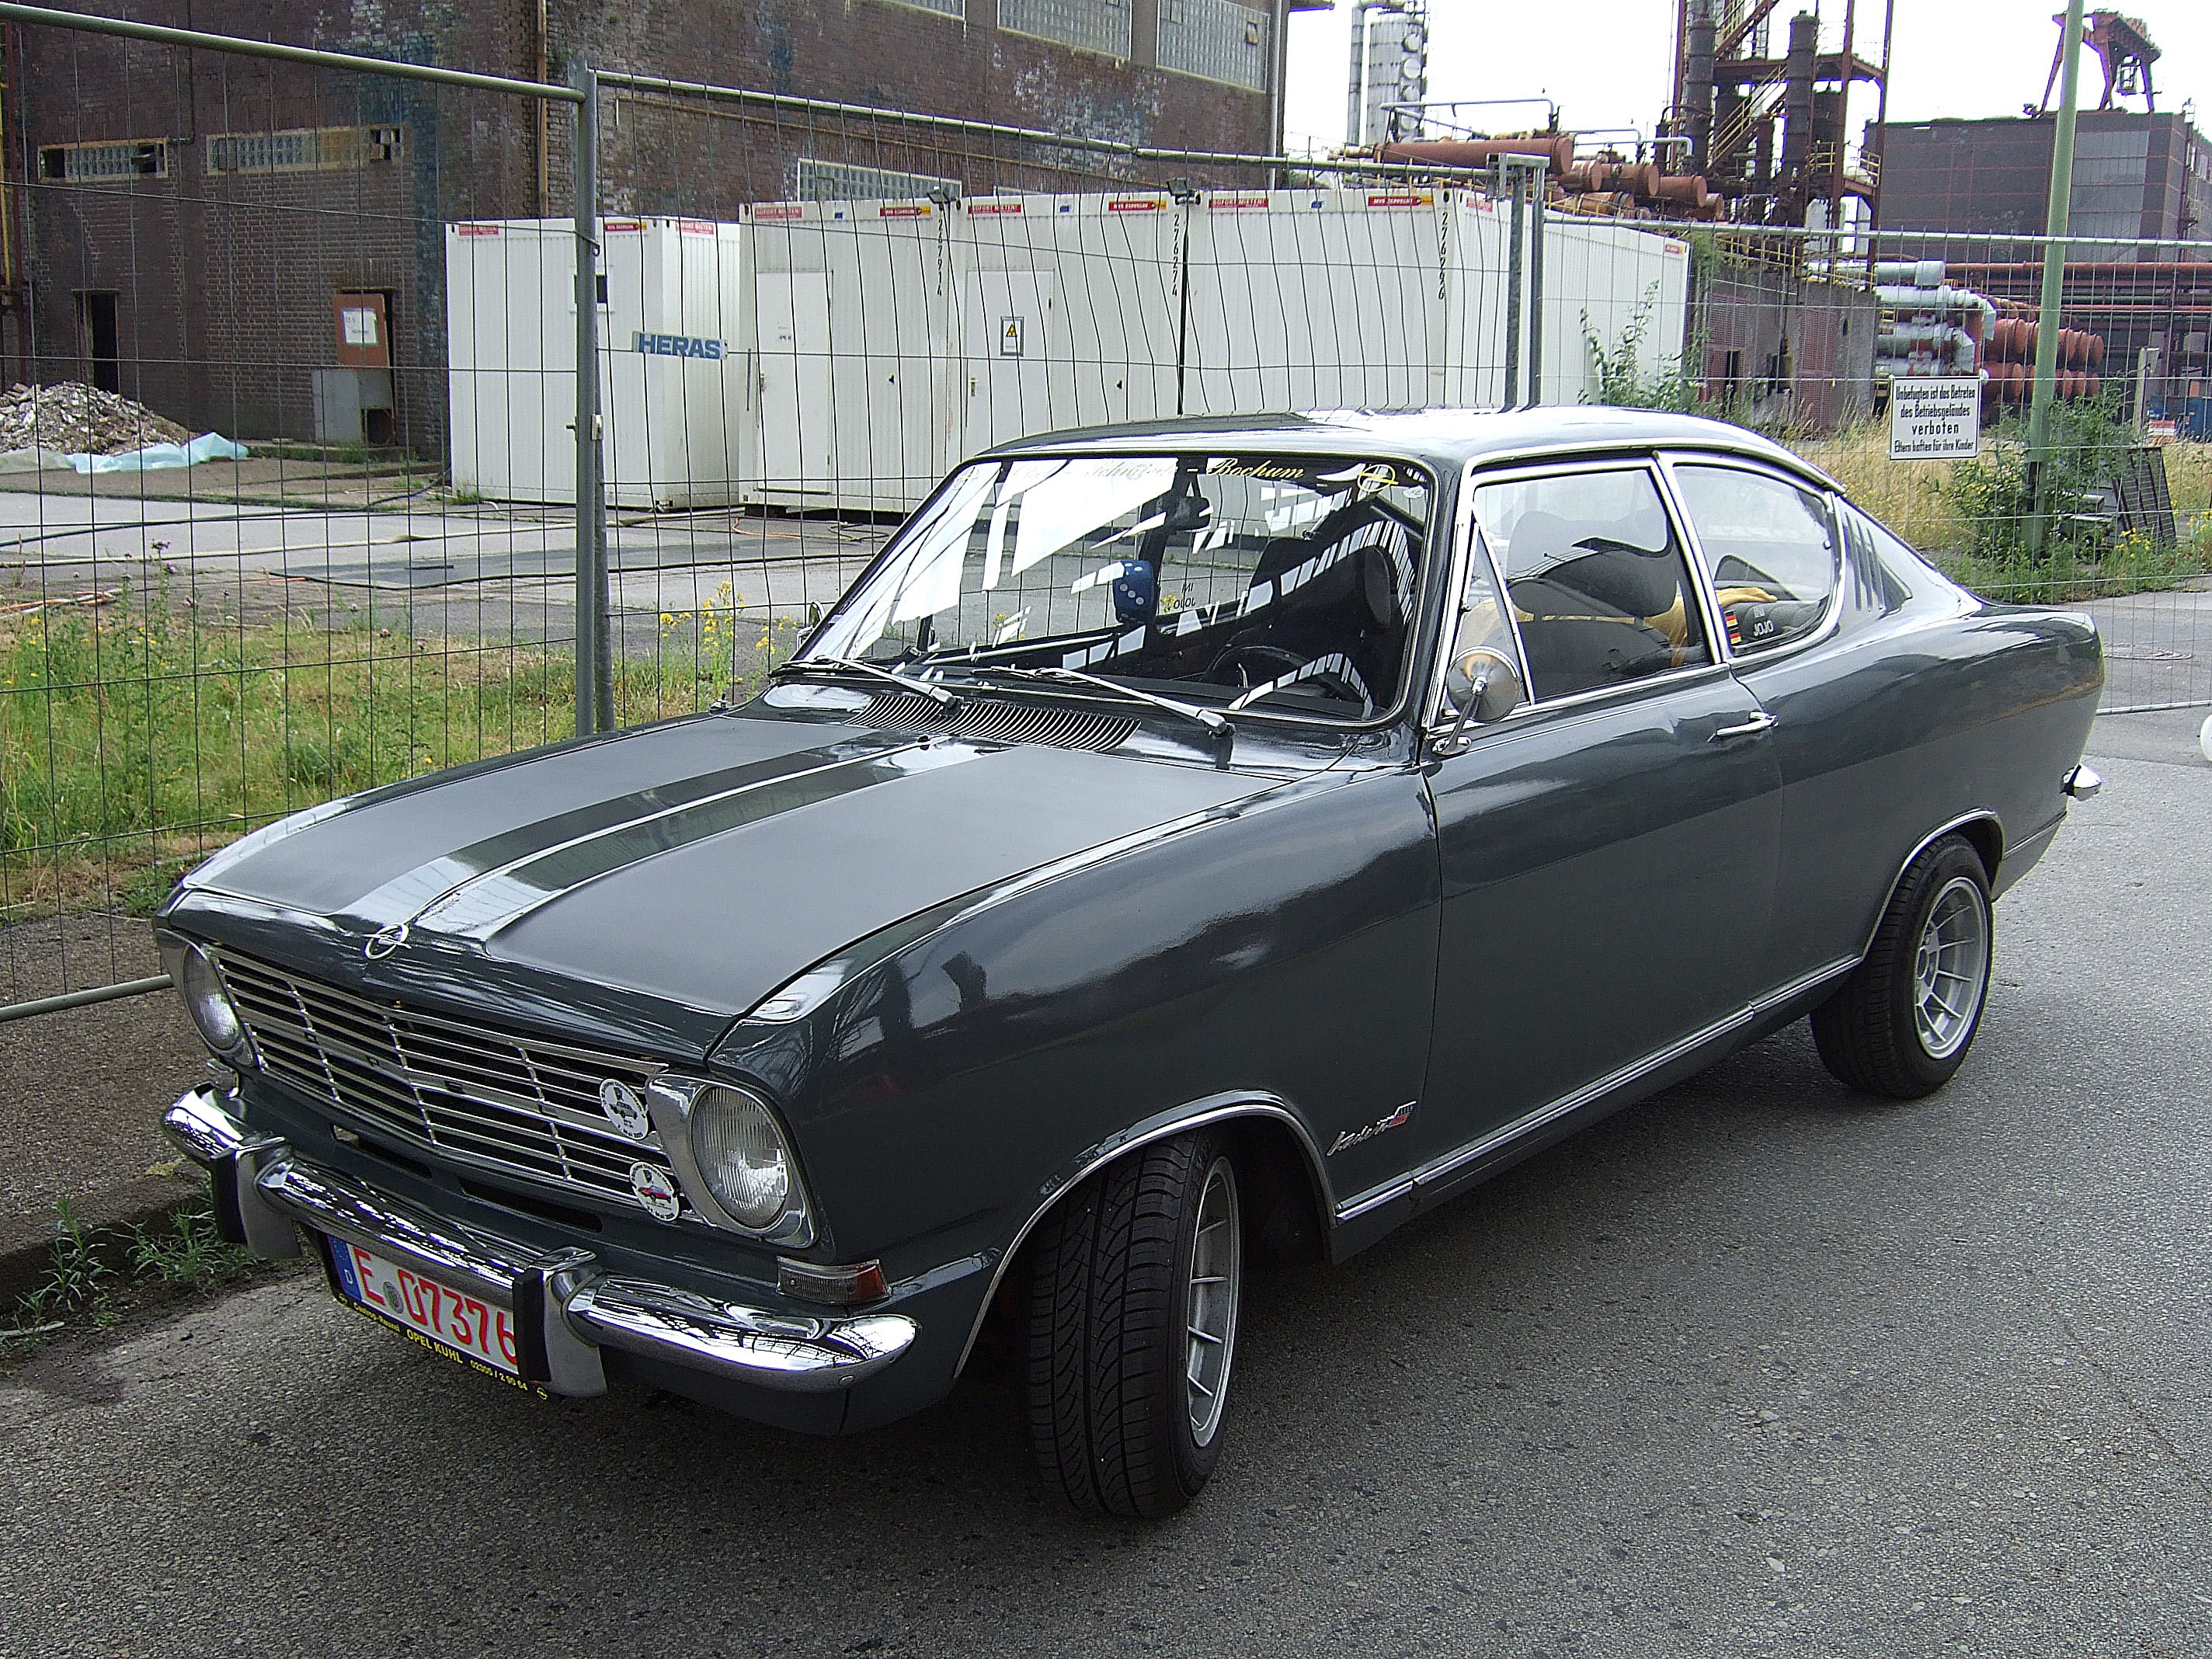 Opel Kadett B (Kiemen-) Coupé | Flickr - Photo Sharing!